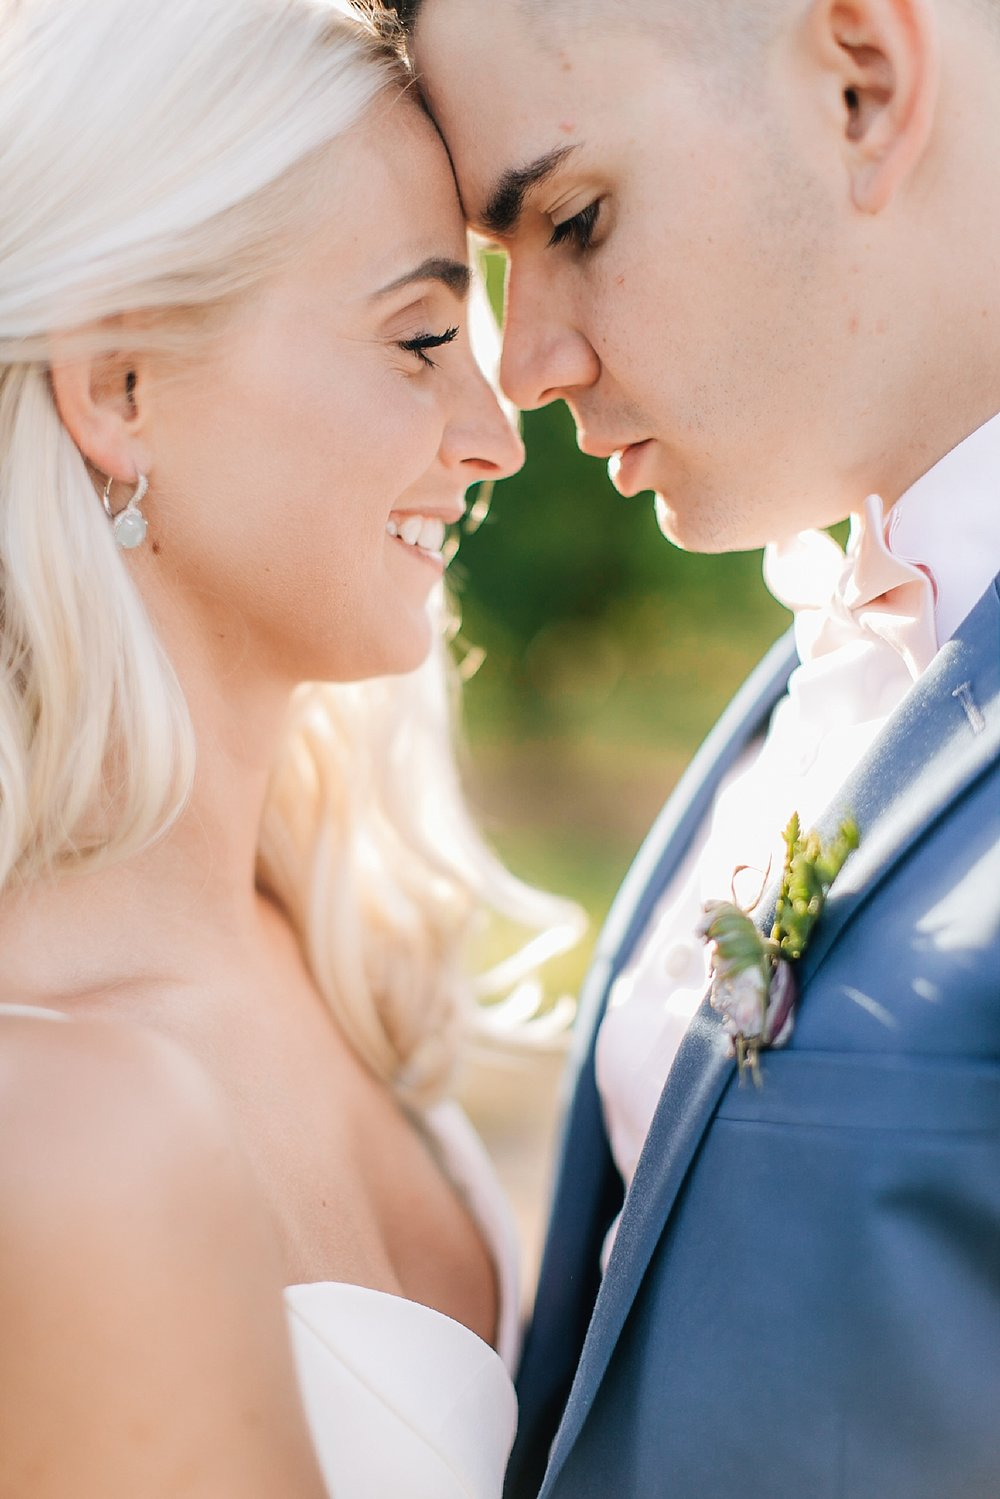 A Unique Outdoor Summer Wedding at Bast Brothers Garden Center by Magdalena Studios_0028.jpg